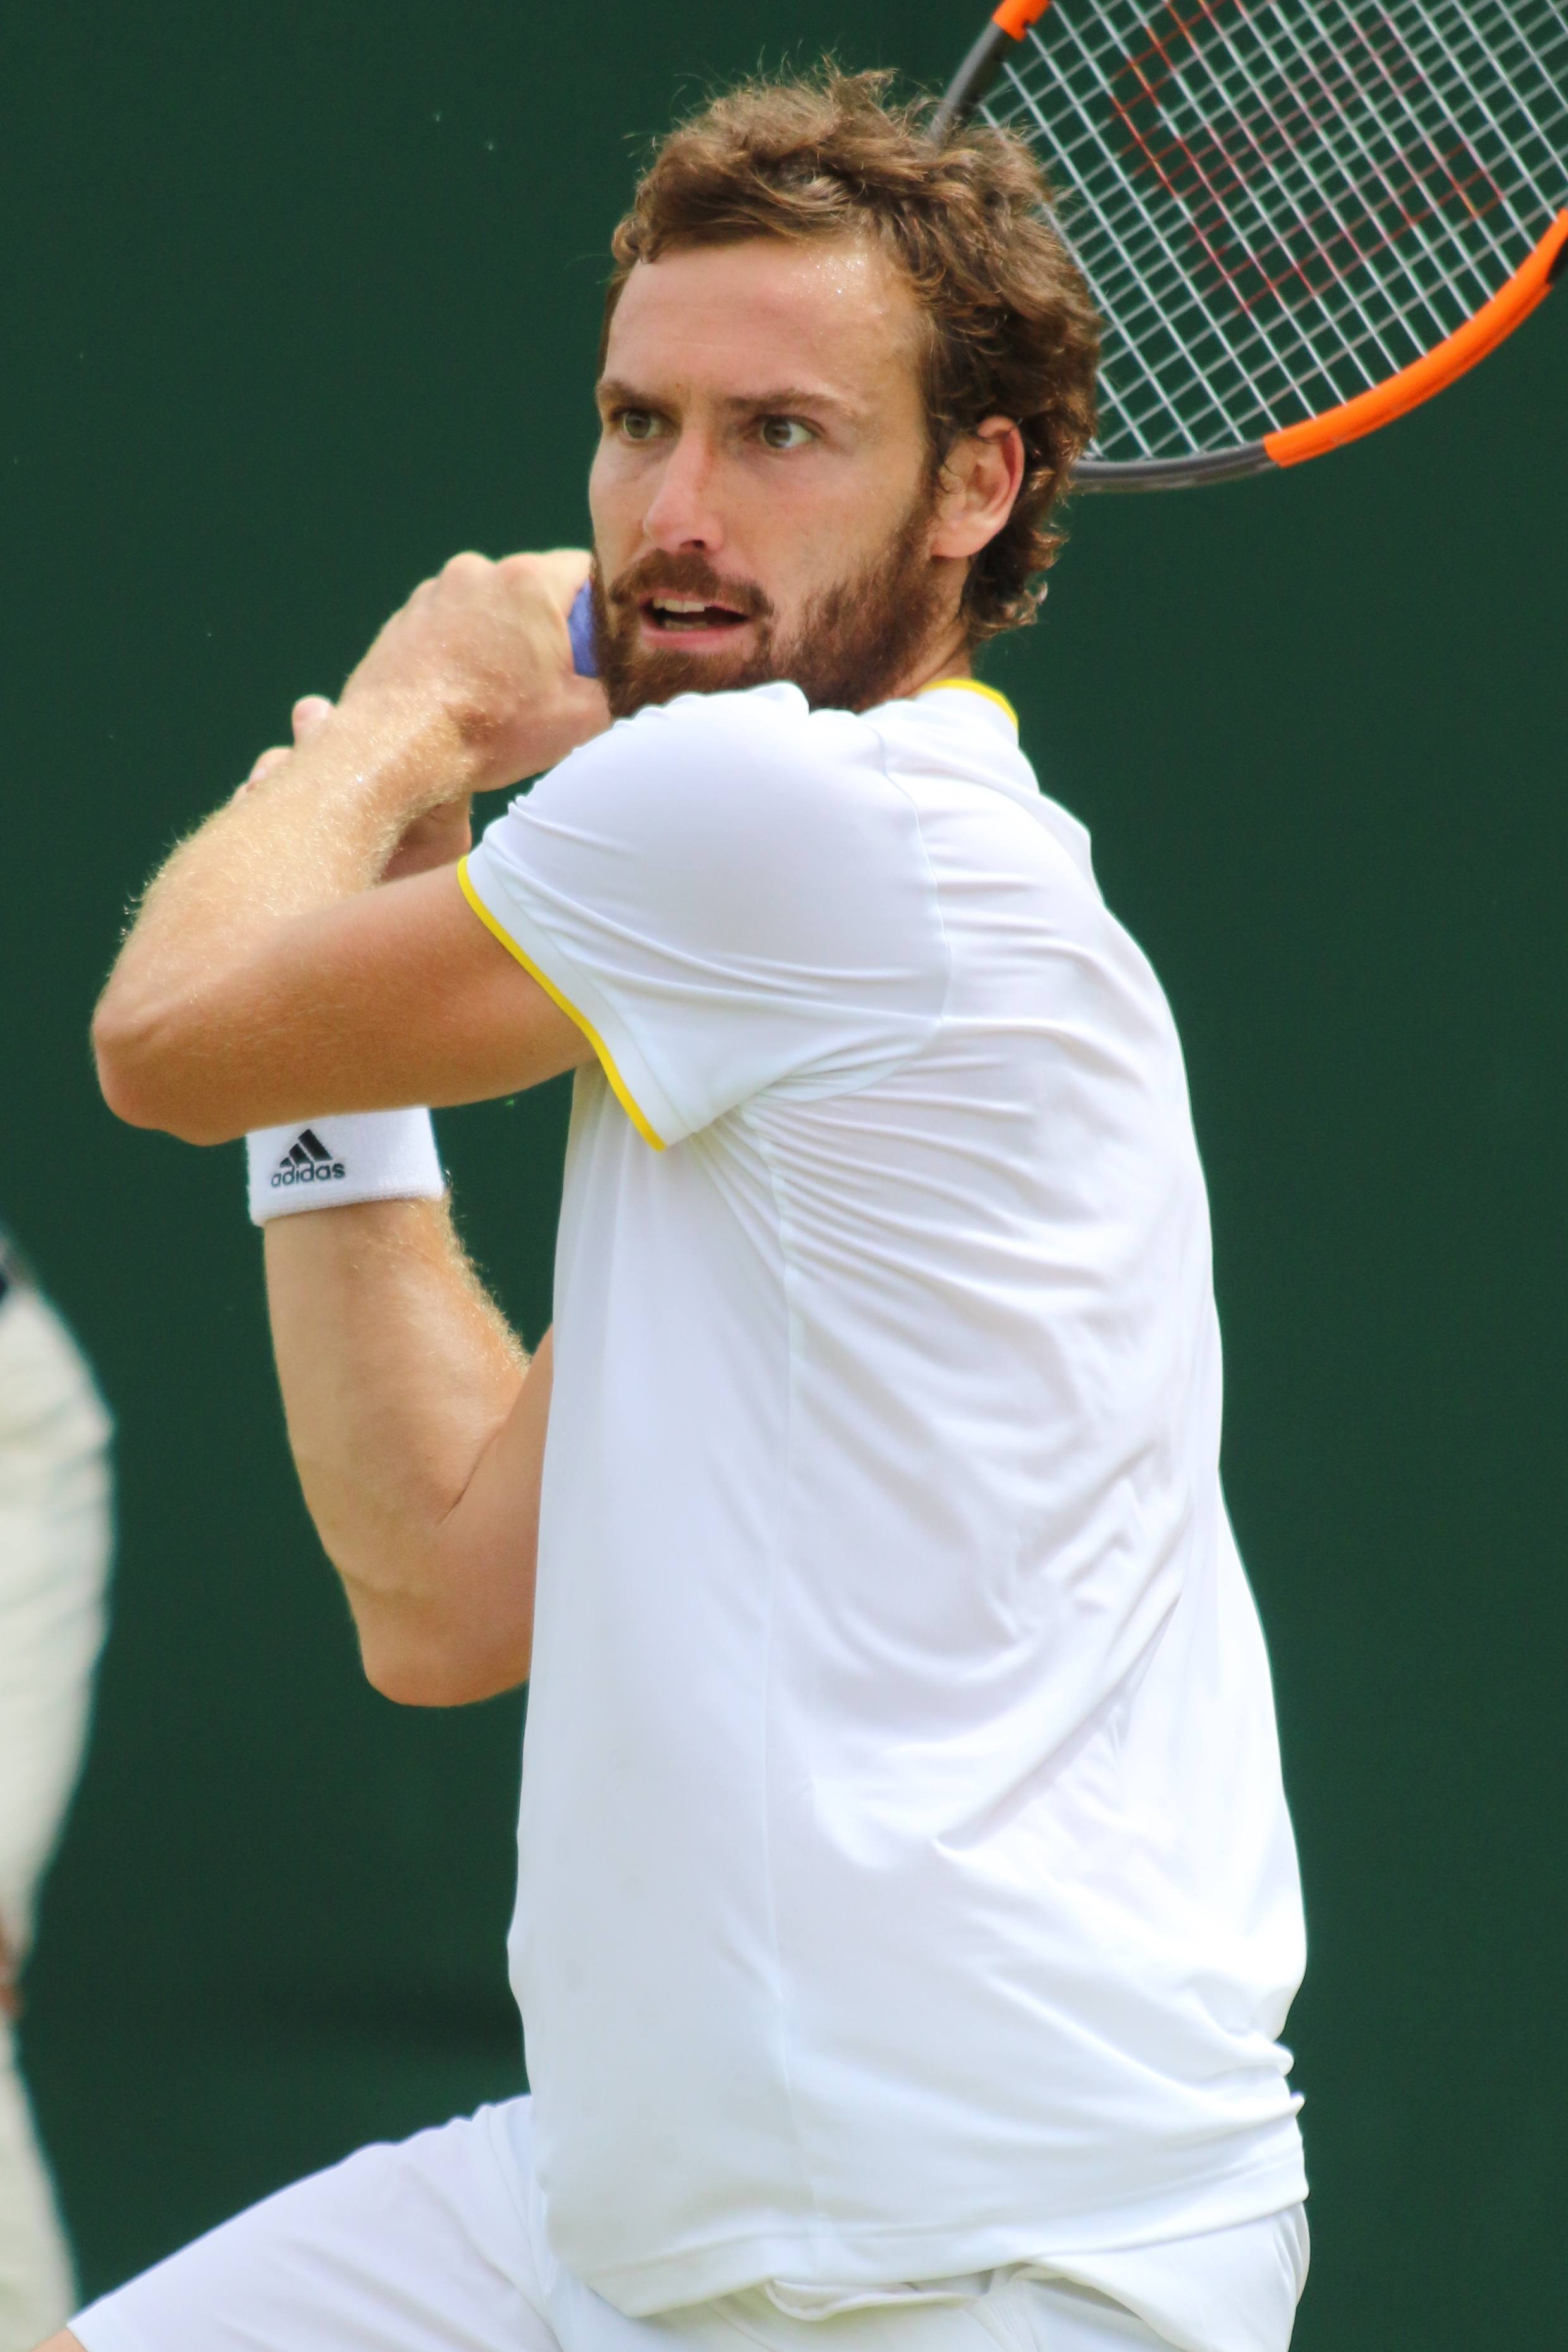 The 29-year old son of father Ainārs Gulbis  and mother Milena Gulbe Ernests Gulbis in 2018 photo. Ernests Gulbis earned a  million dollar salary - leaving the net worth at 4 million in 2018